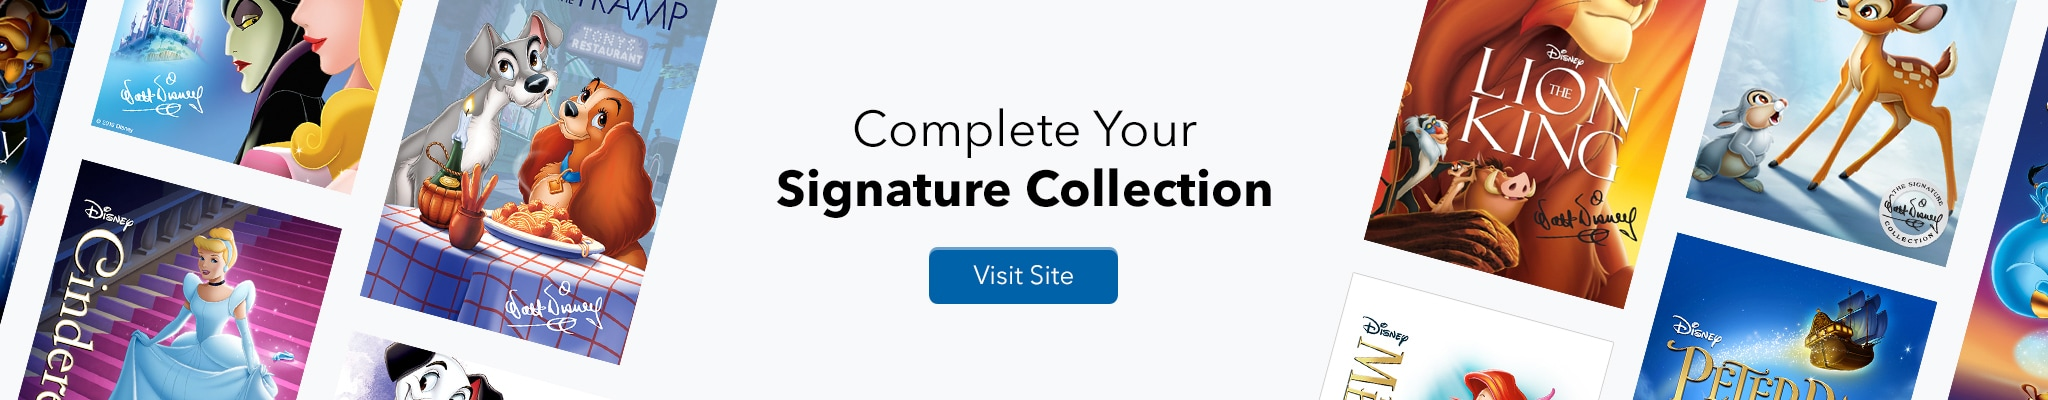 Complete Your Signature Collection. Visit Site.